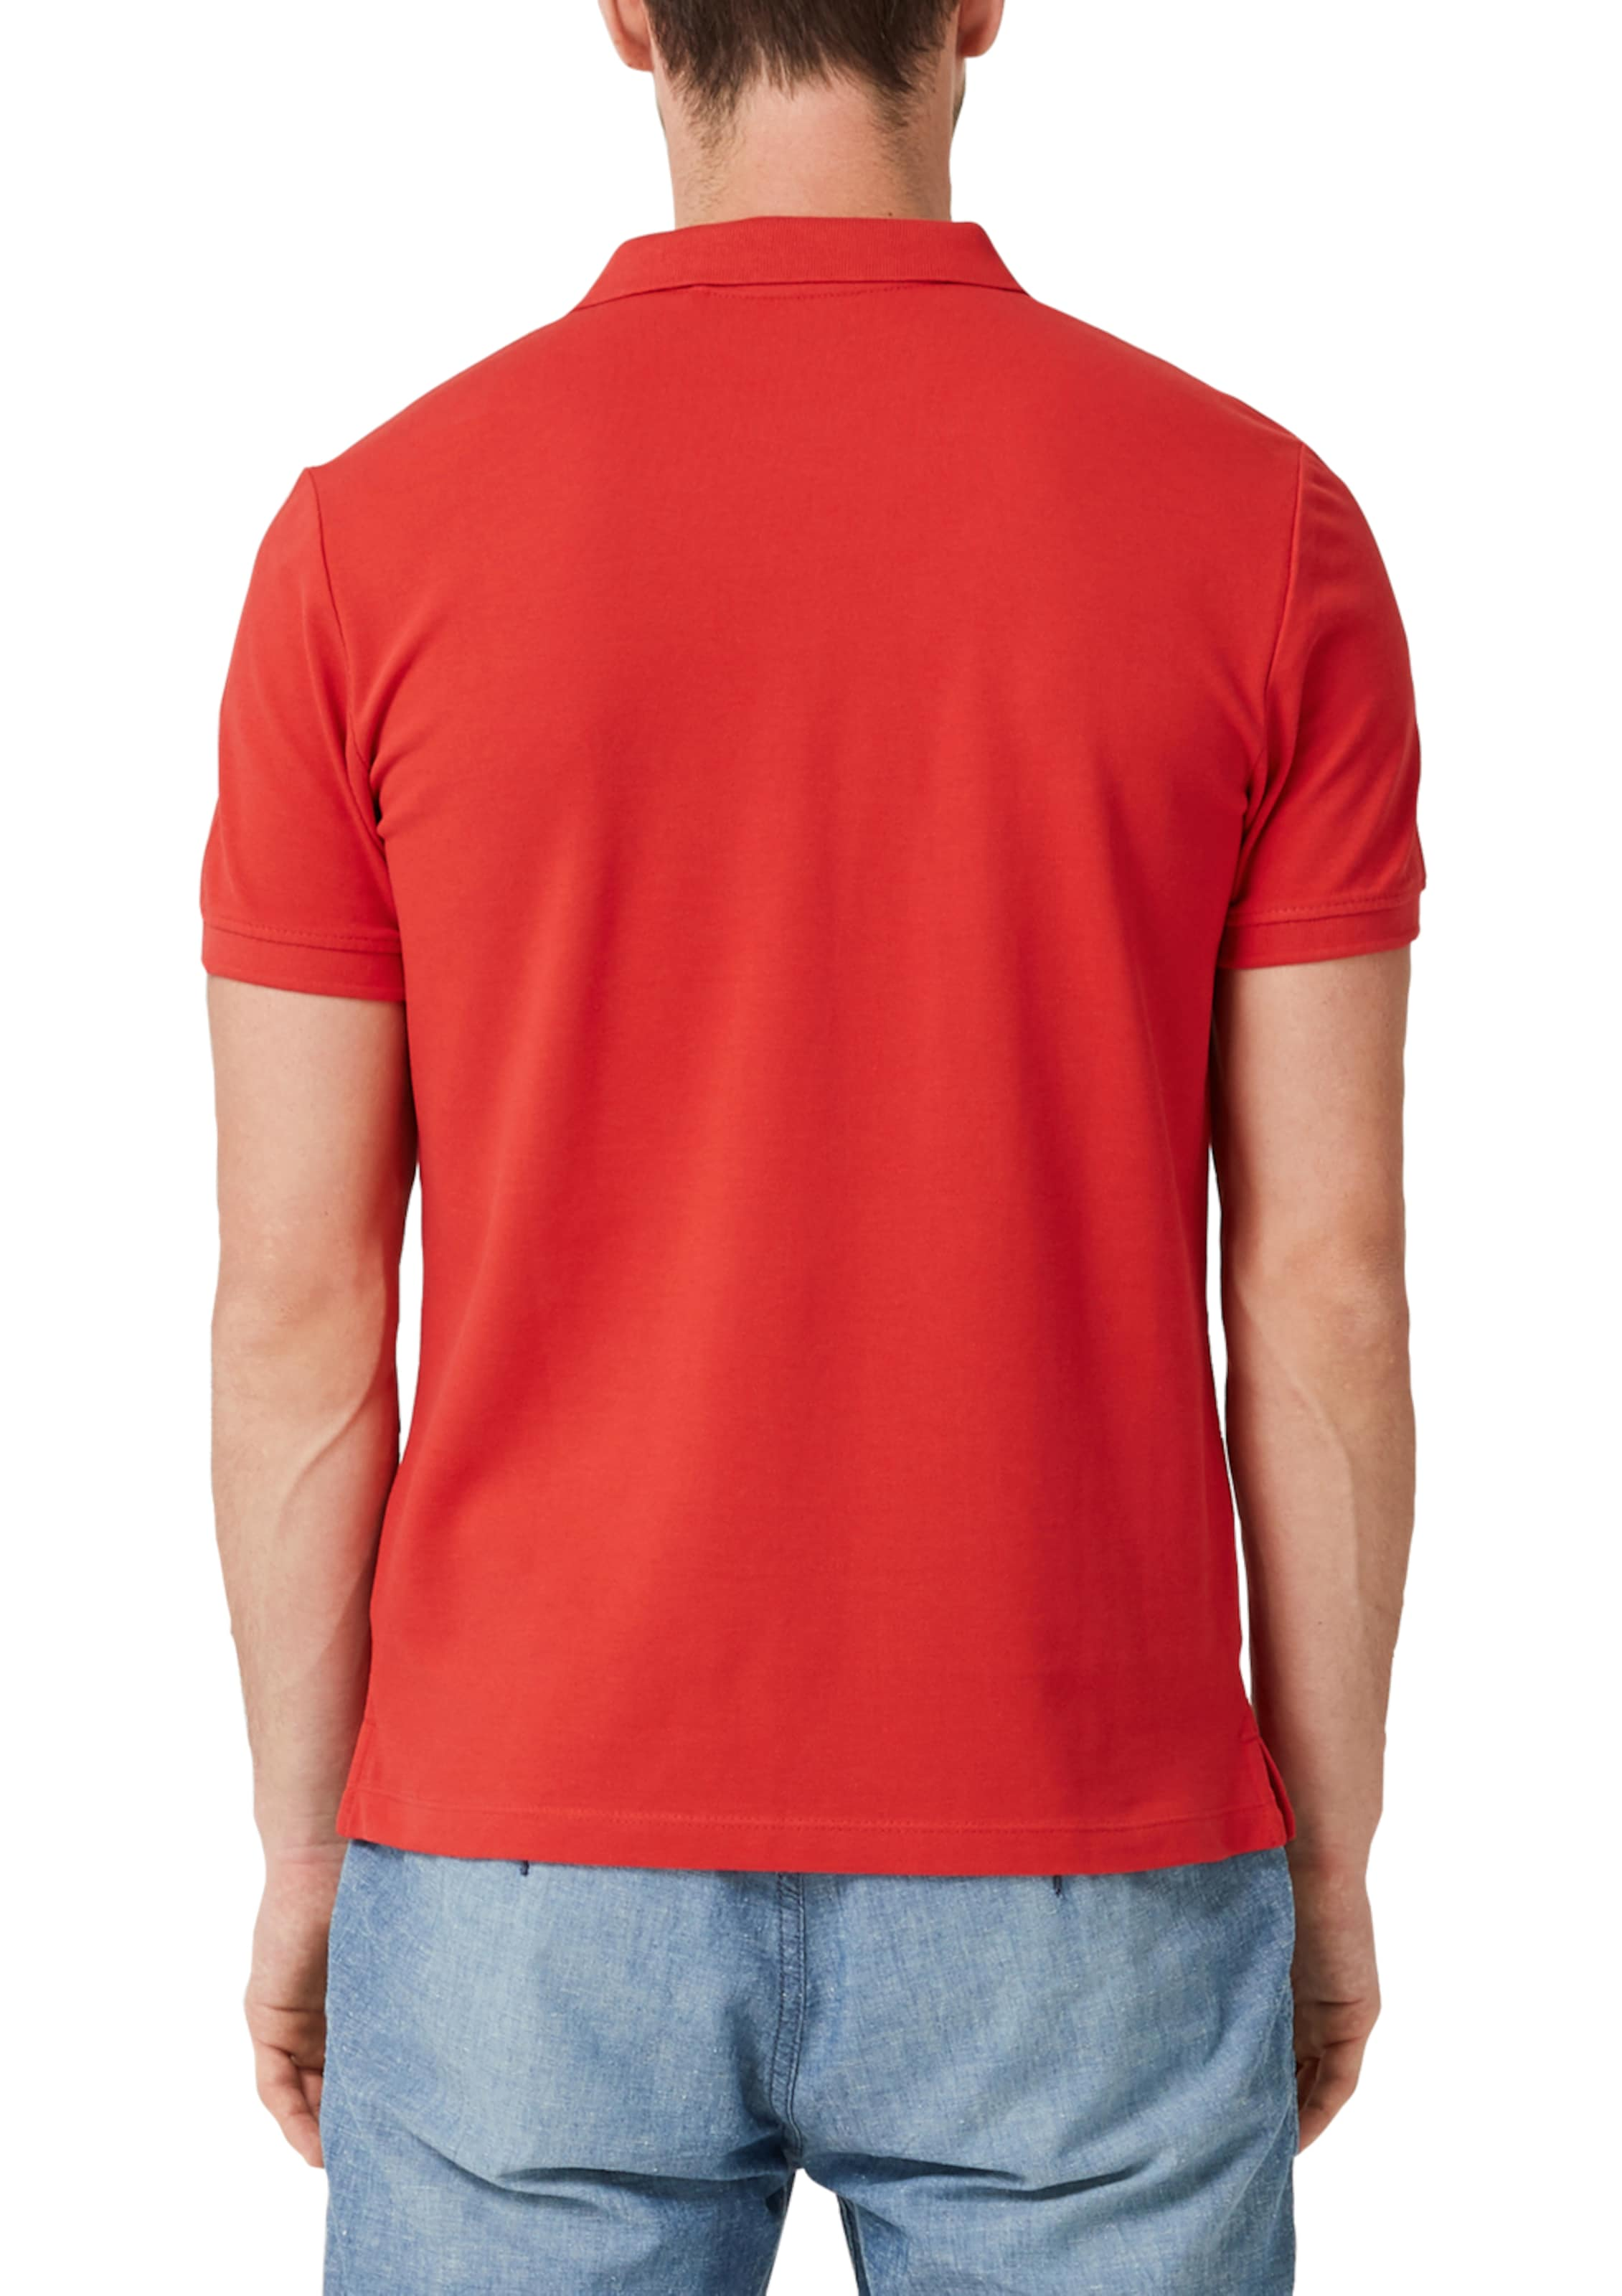 S oliver In Label Red Poloshirt Hellrot WE9HD2I